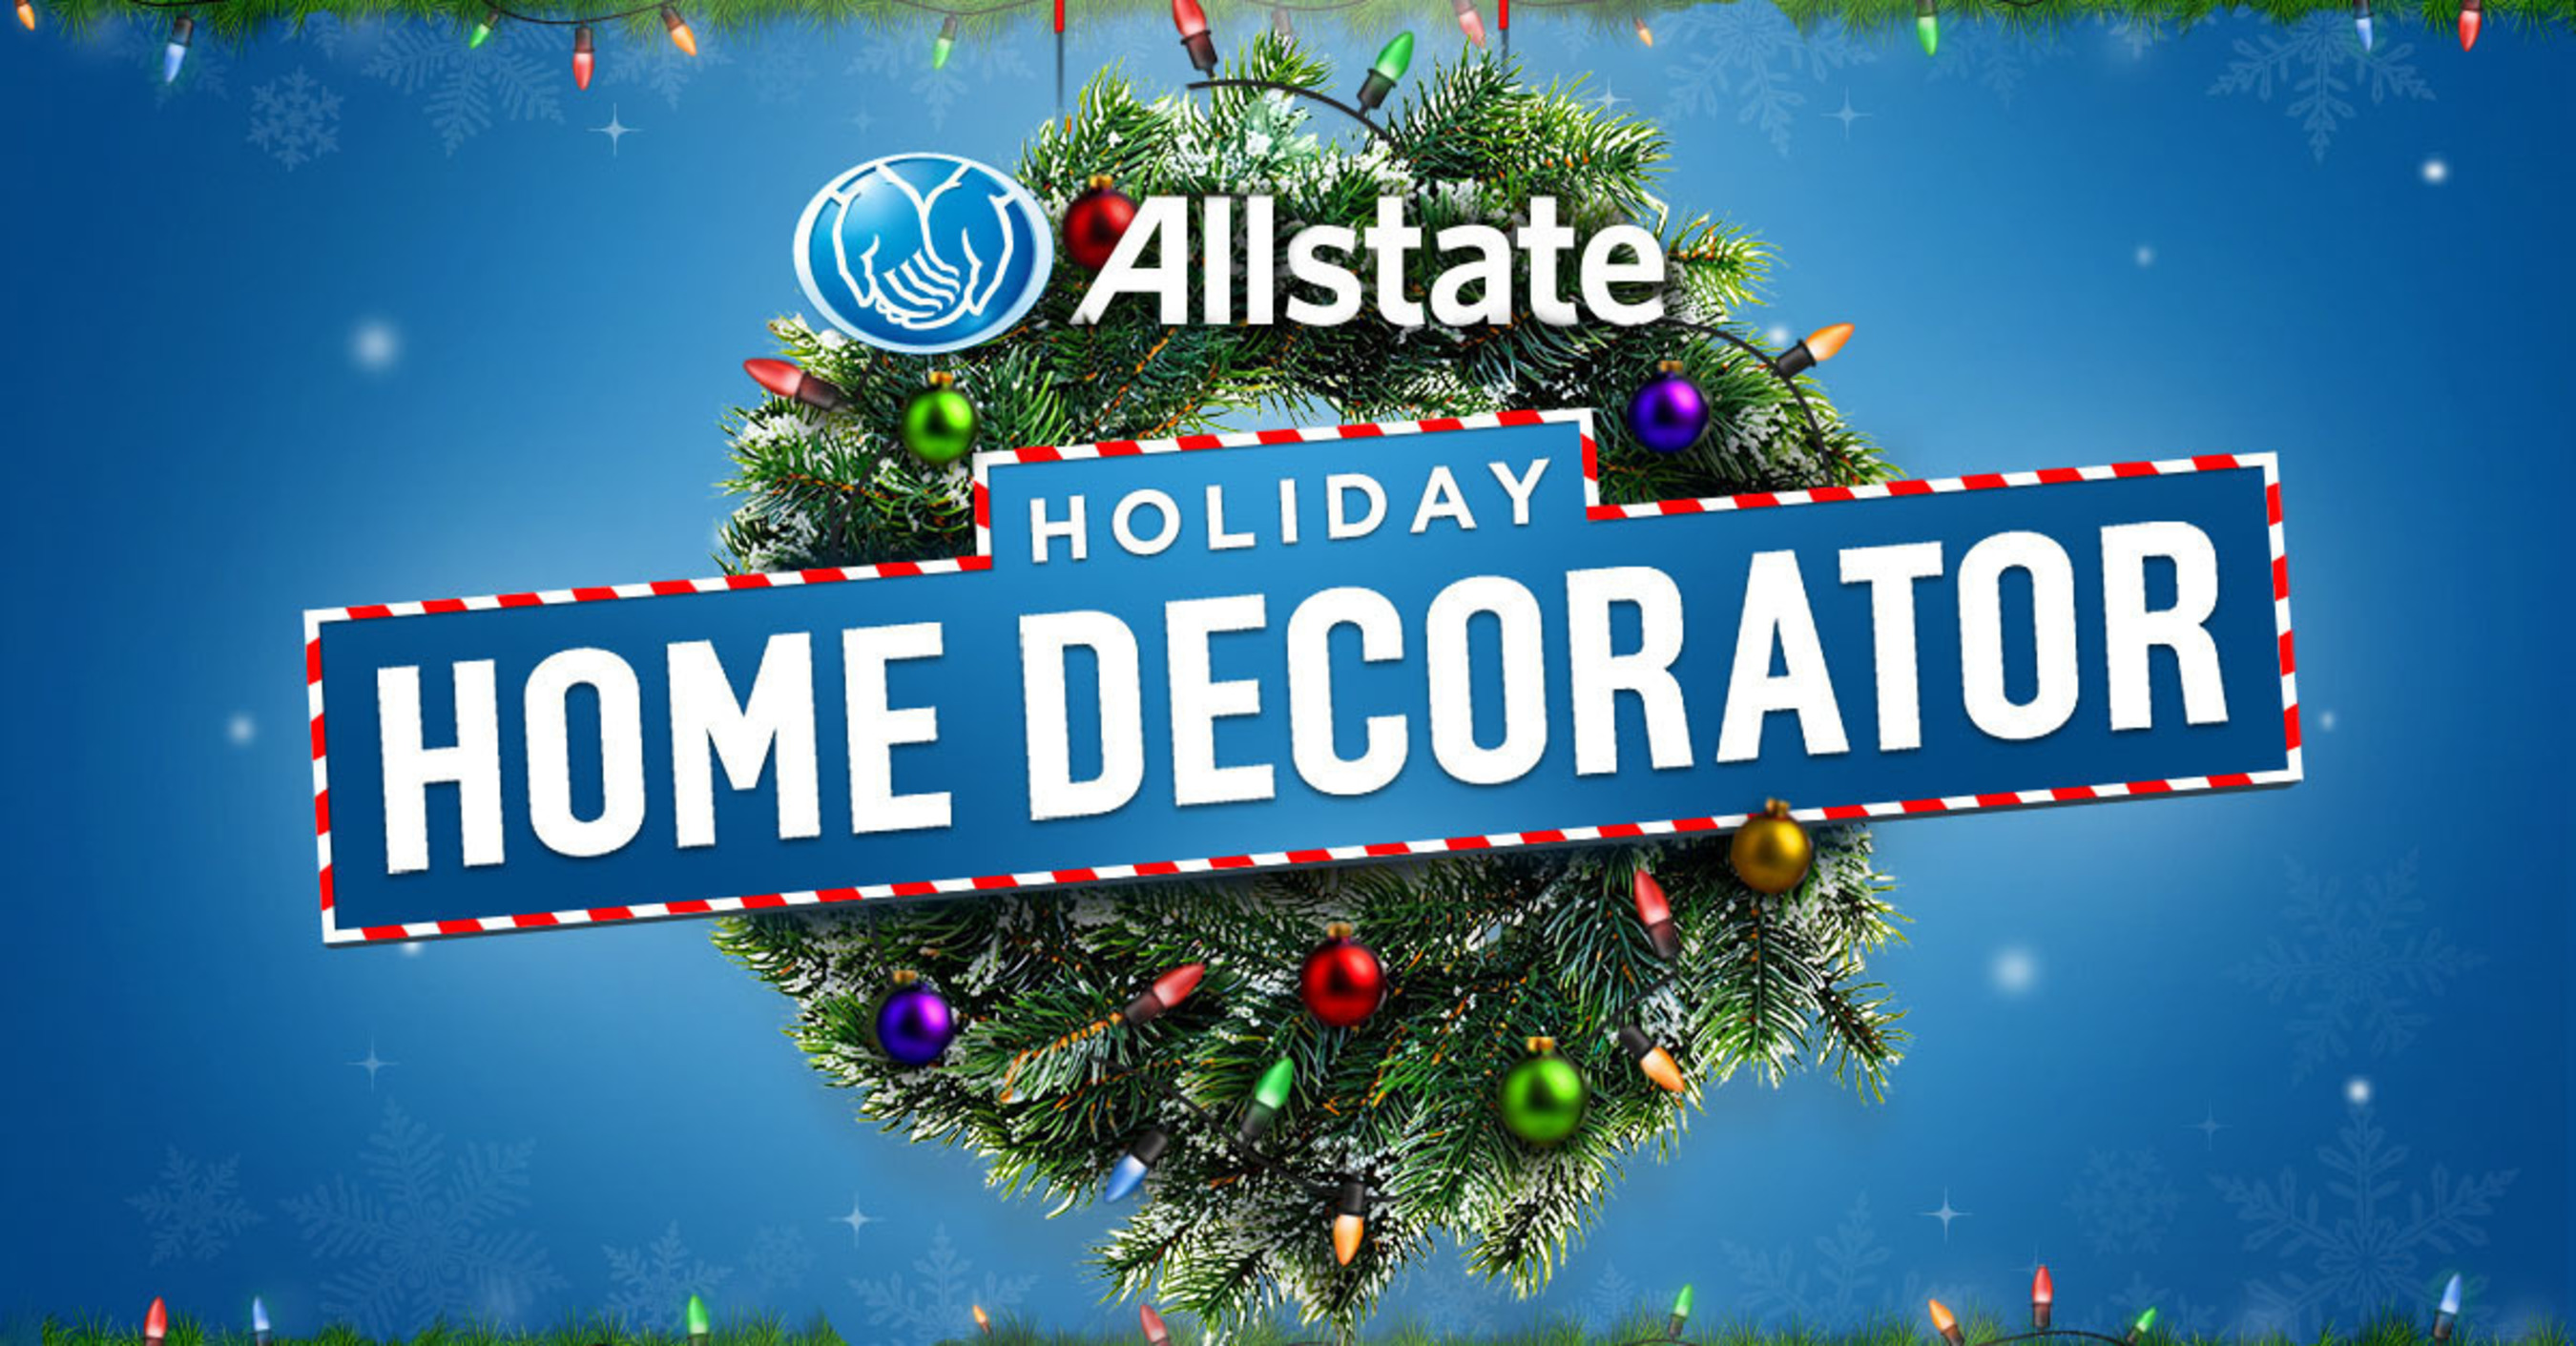 Avoid Mayhem this season with the Allstate Holiday Home Decorator. (PRNewsFoto/Allstate)